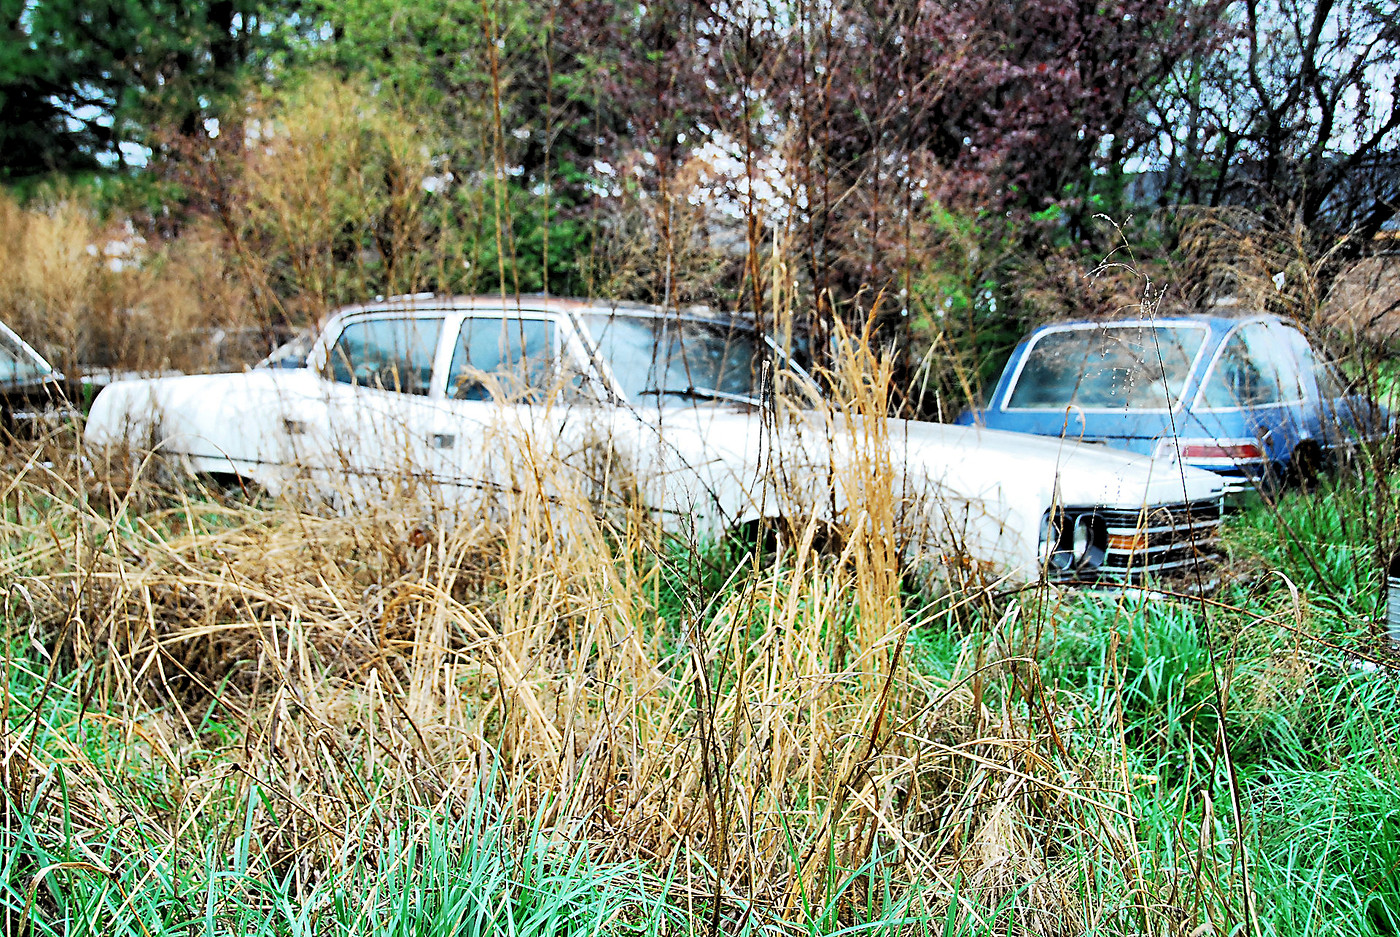 Collier Motors car in weeds